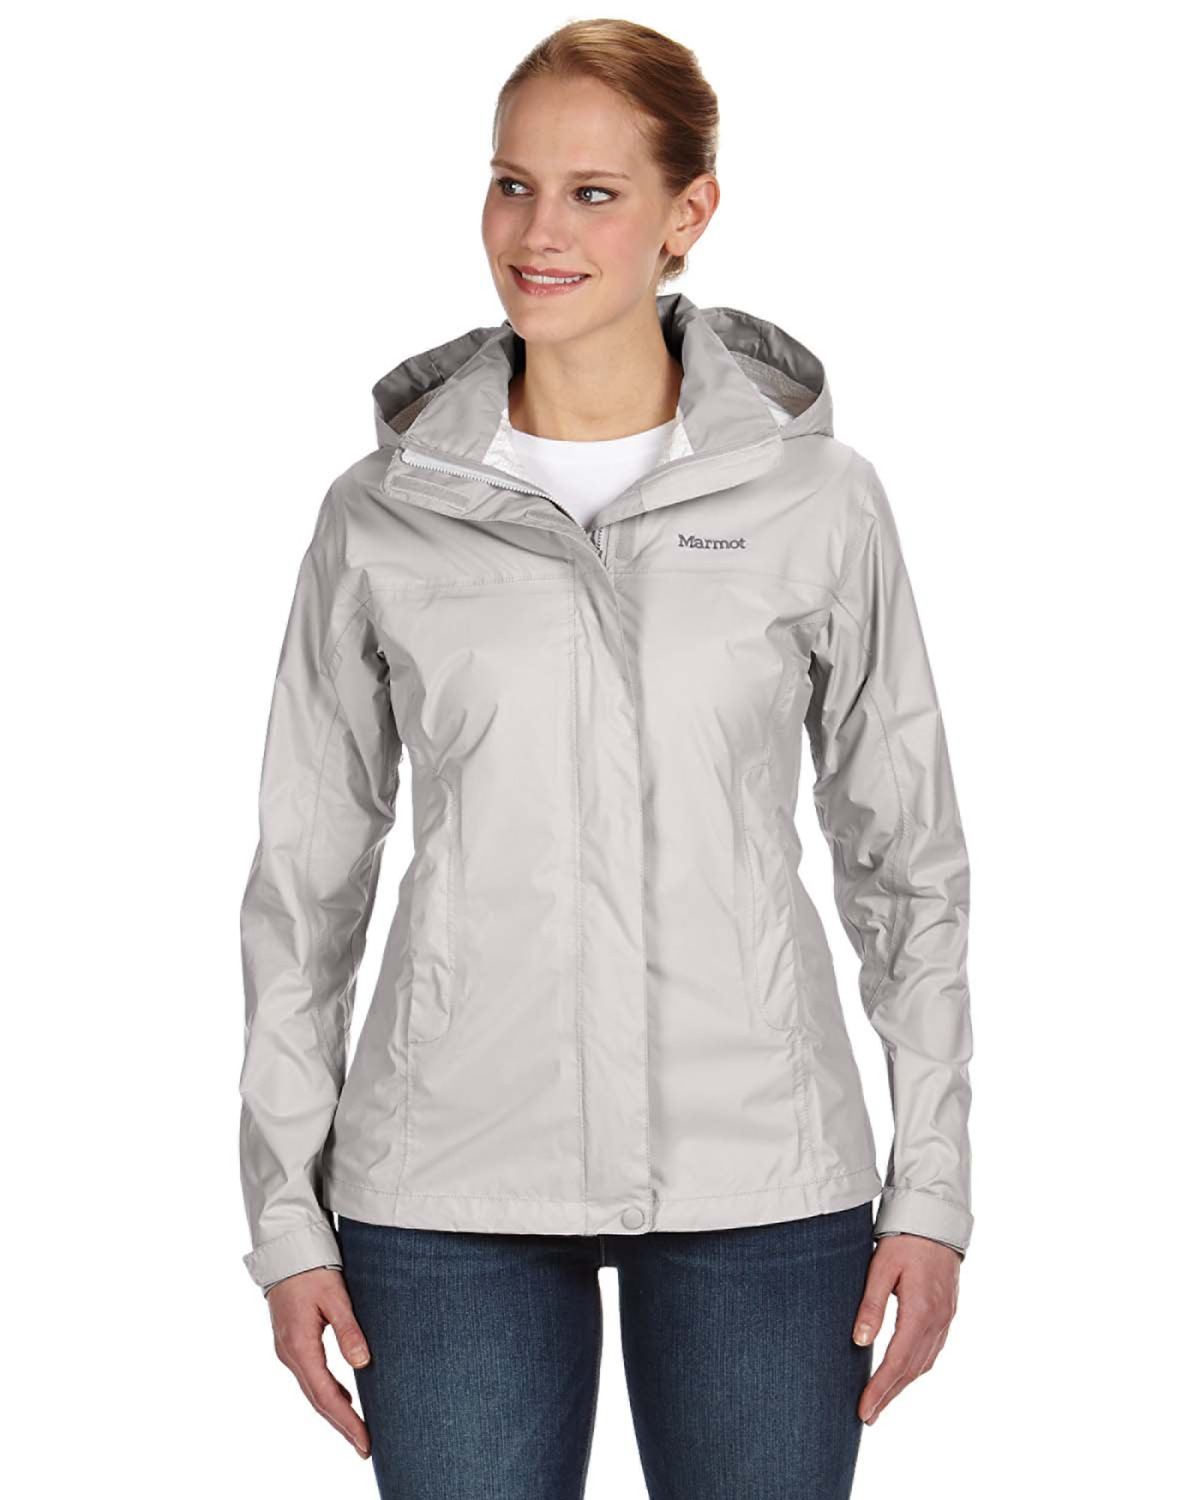 Marmot - 46200, Ladies' PreCip Jacket, Embroidery, Screen Printing - Logo Masters International